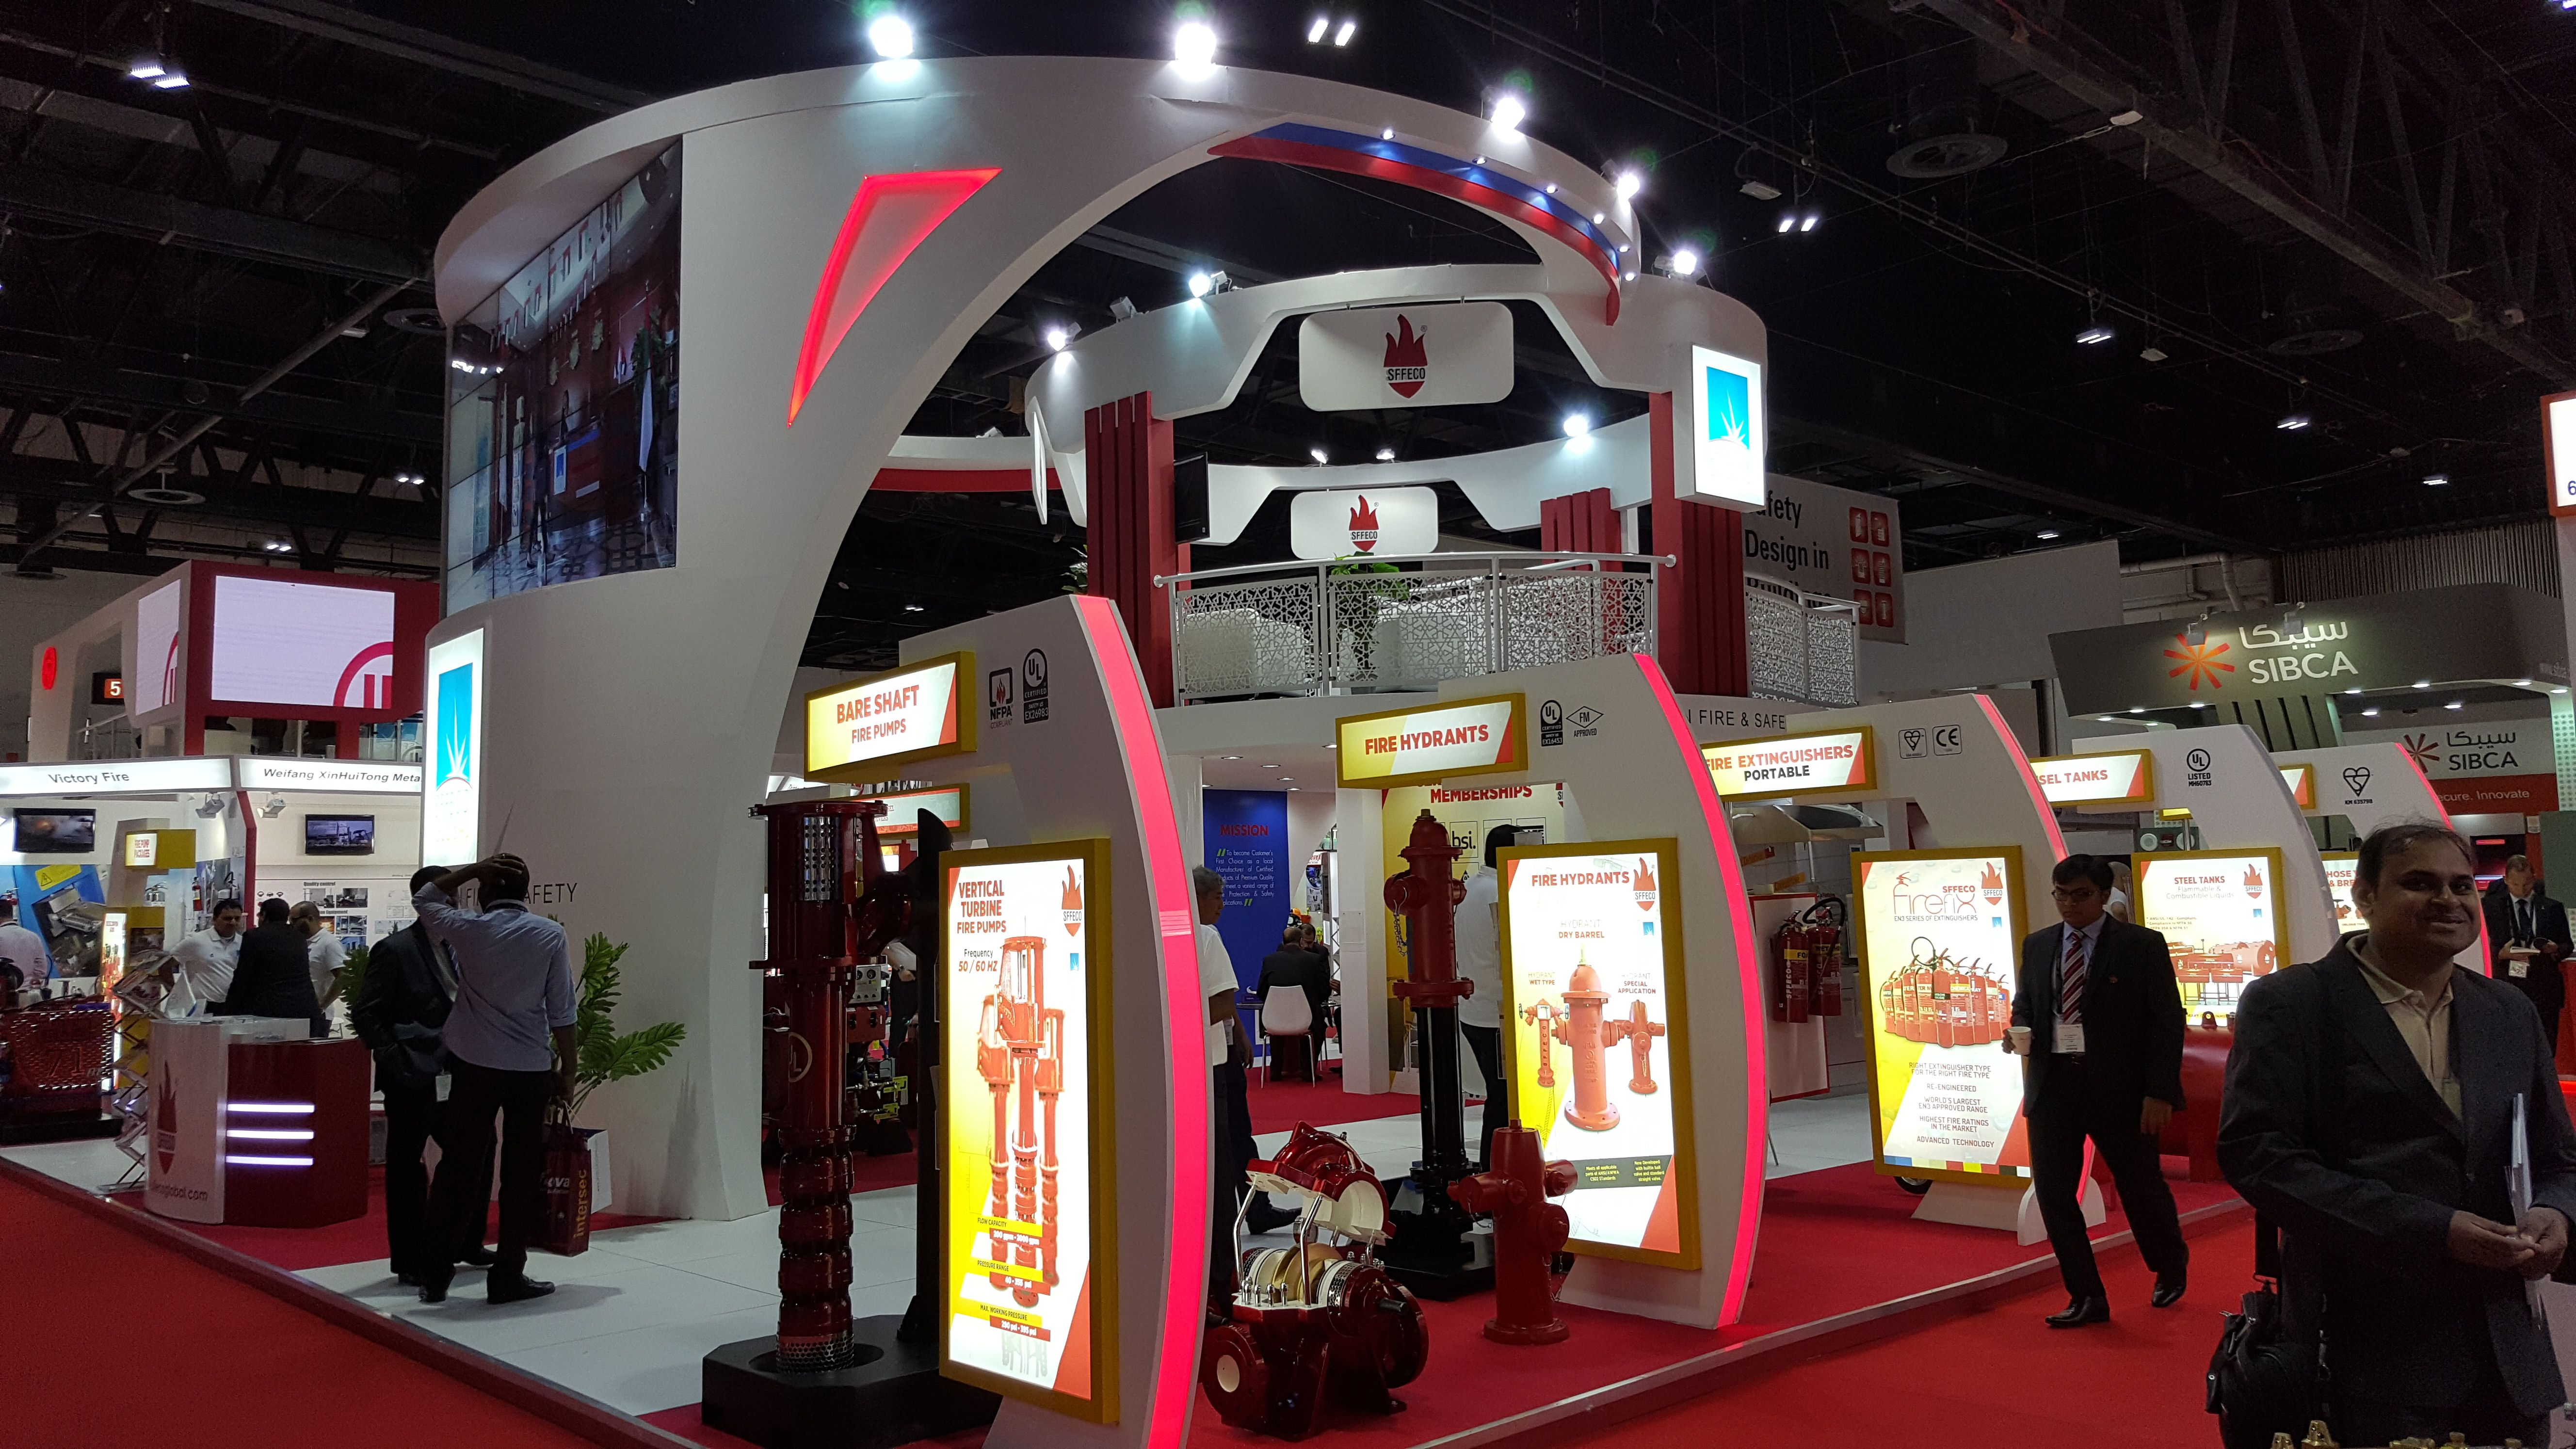 Exhibition Stand Requirements : Exhibition stand design ideas to draw more people eventbrite uk